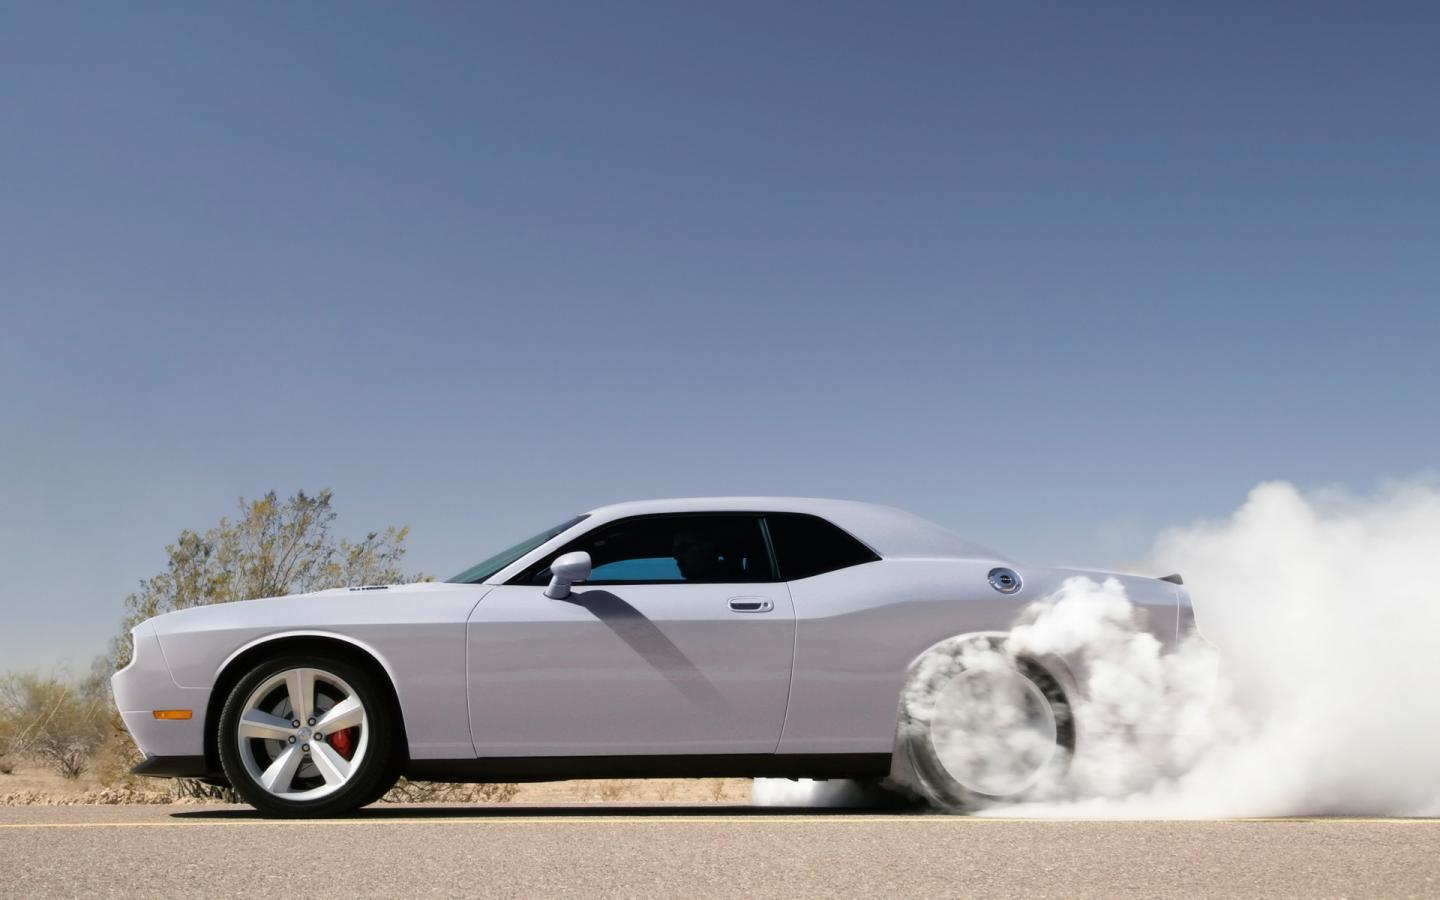 2009 Dodge Challenger Srt8 Side Smoke 1440x900